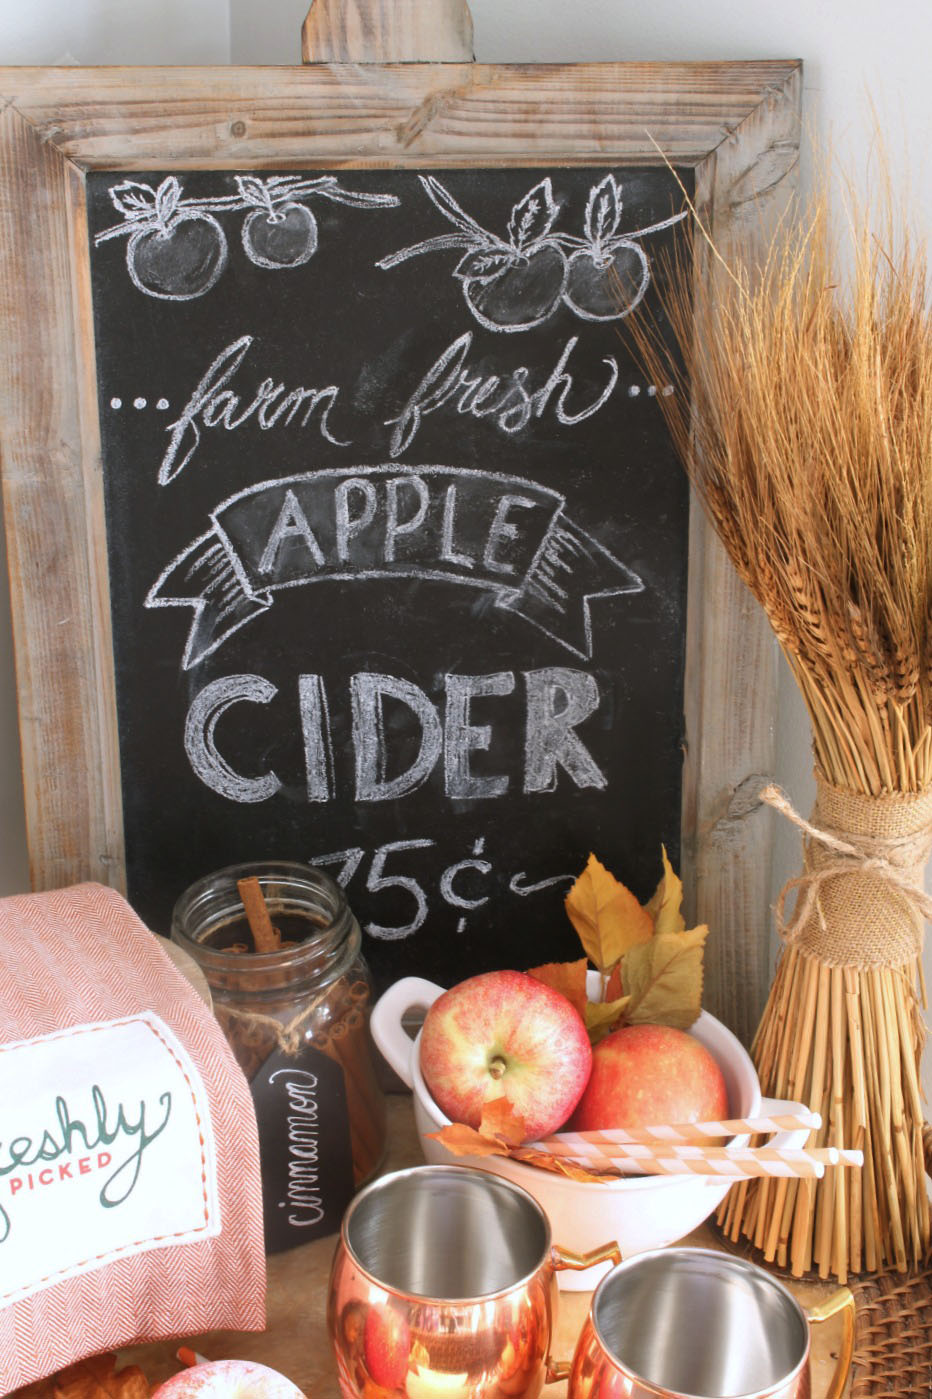 Love this farmhouse style fall chalkboard for an apple cider bar. Fun for fall decorating!